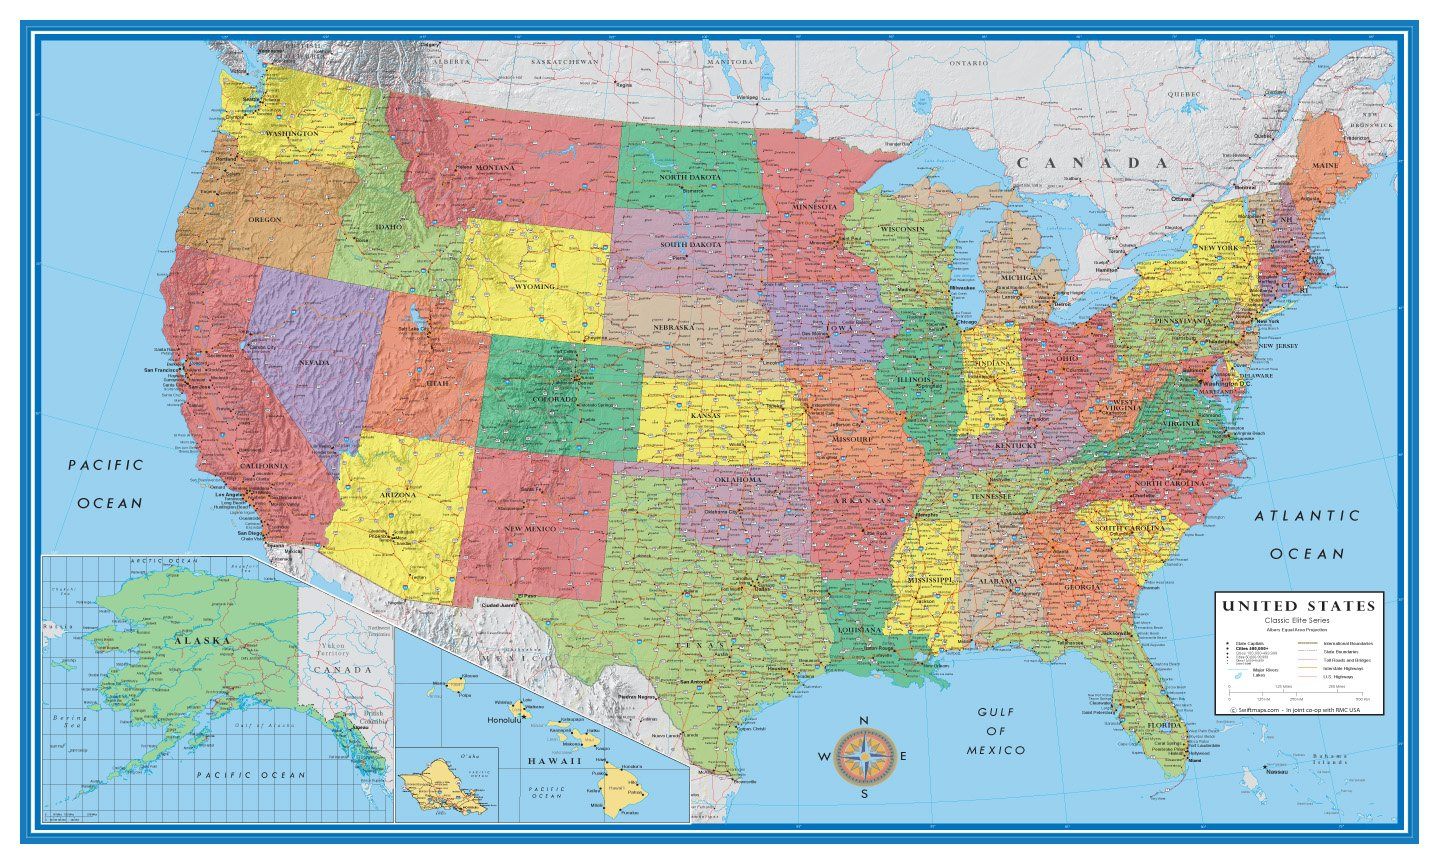 24x36 United States, USA Classic Elite Wall Map Mural Poster (Paper Rolled)